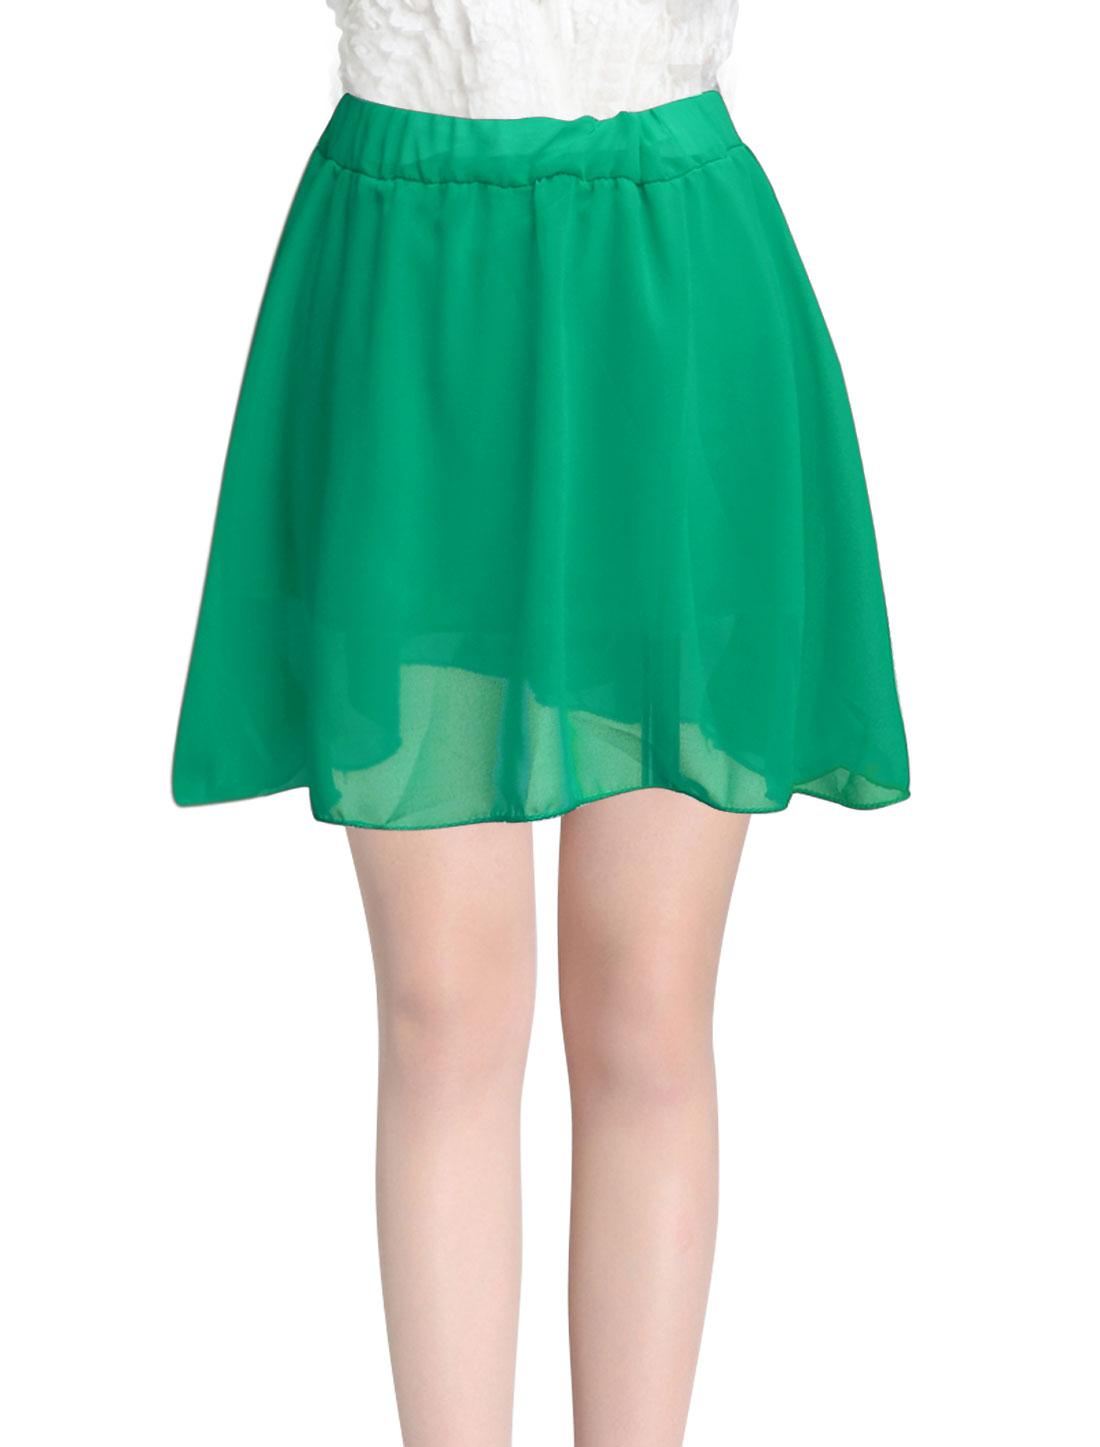 Lady Stretchy Waist Ruffle Design Fully Lined Skirt Green XS